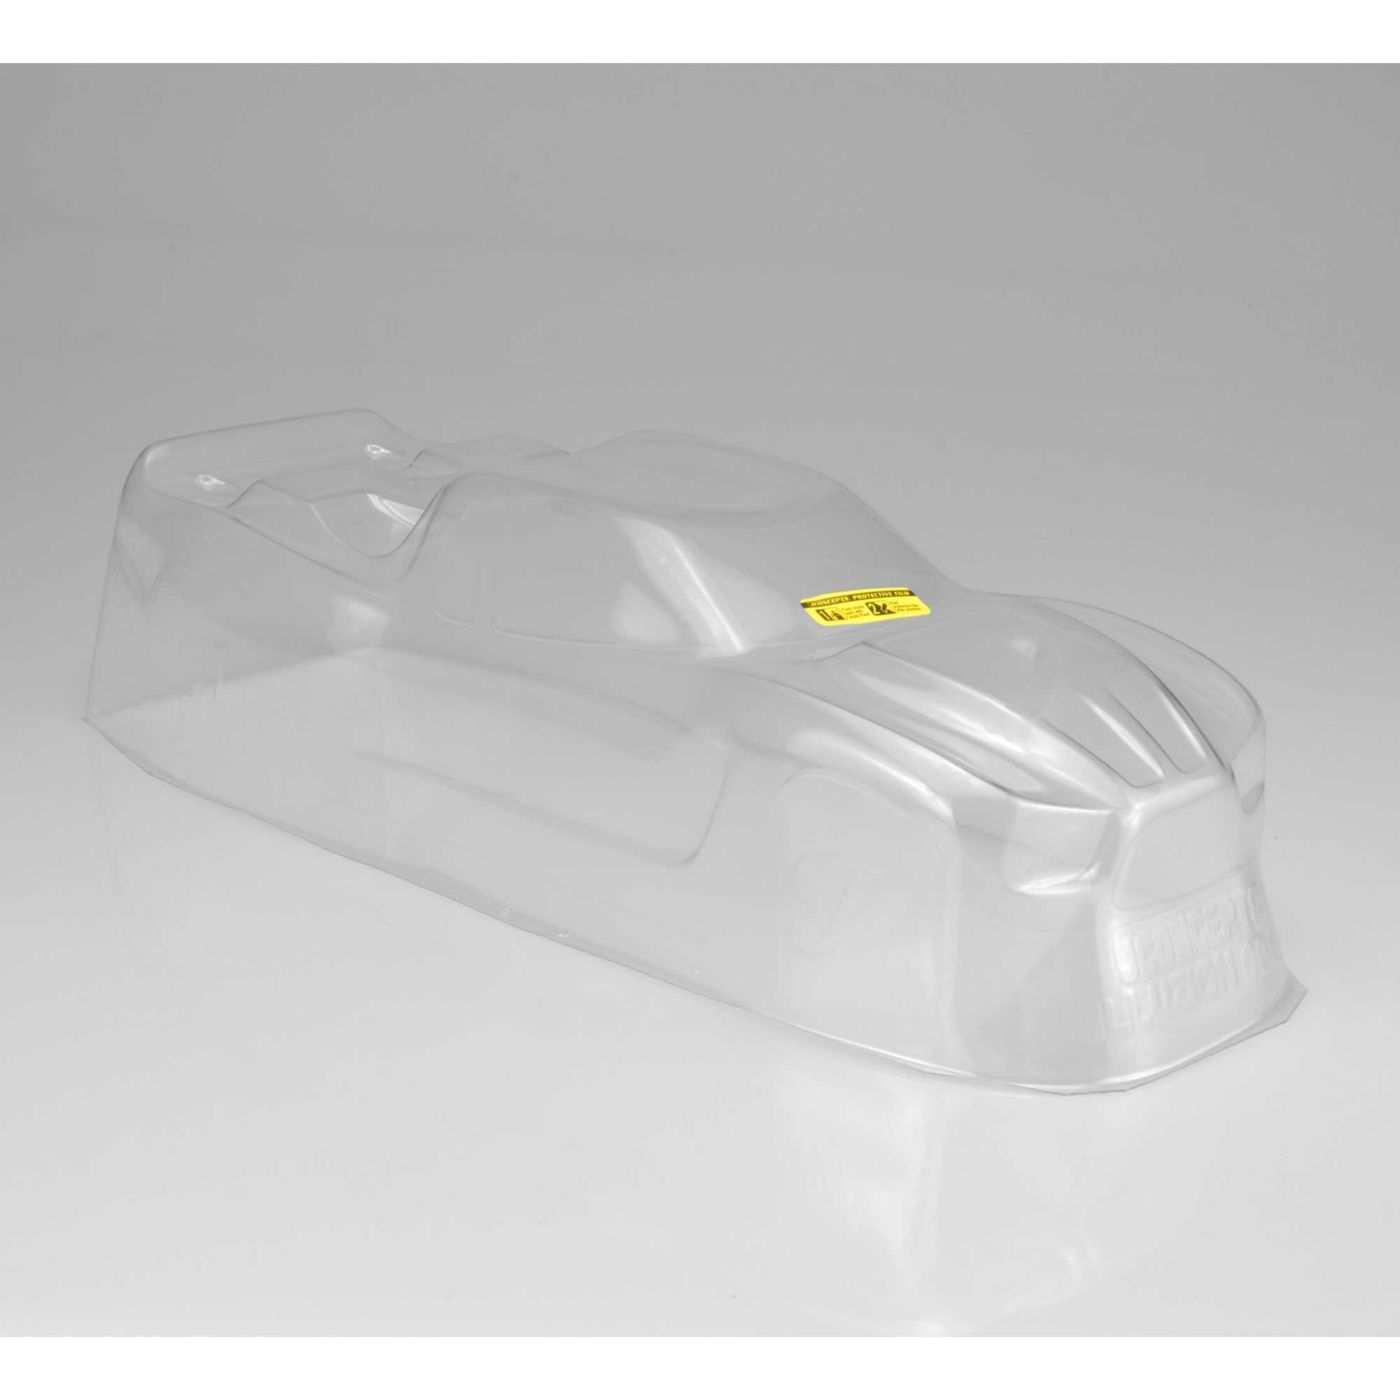 Illuzion clear body hi speed with wing rustler vxl